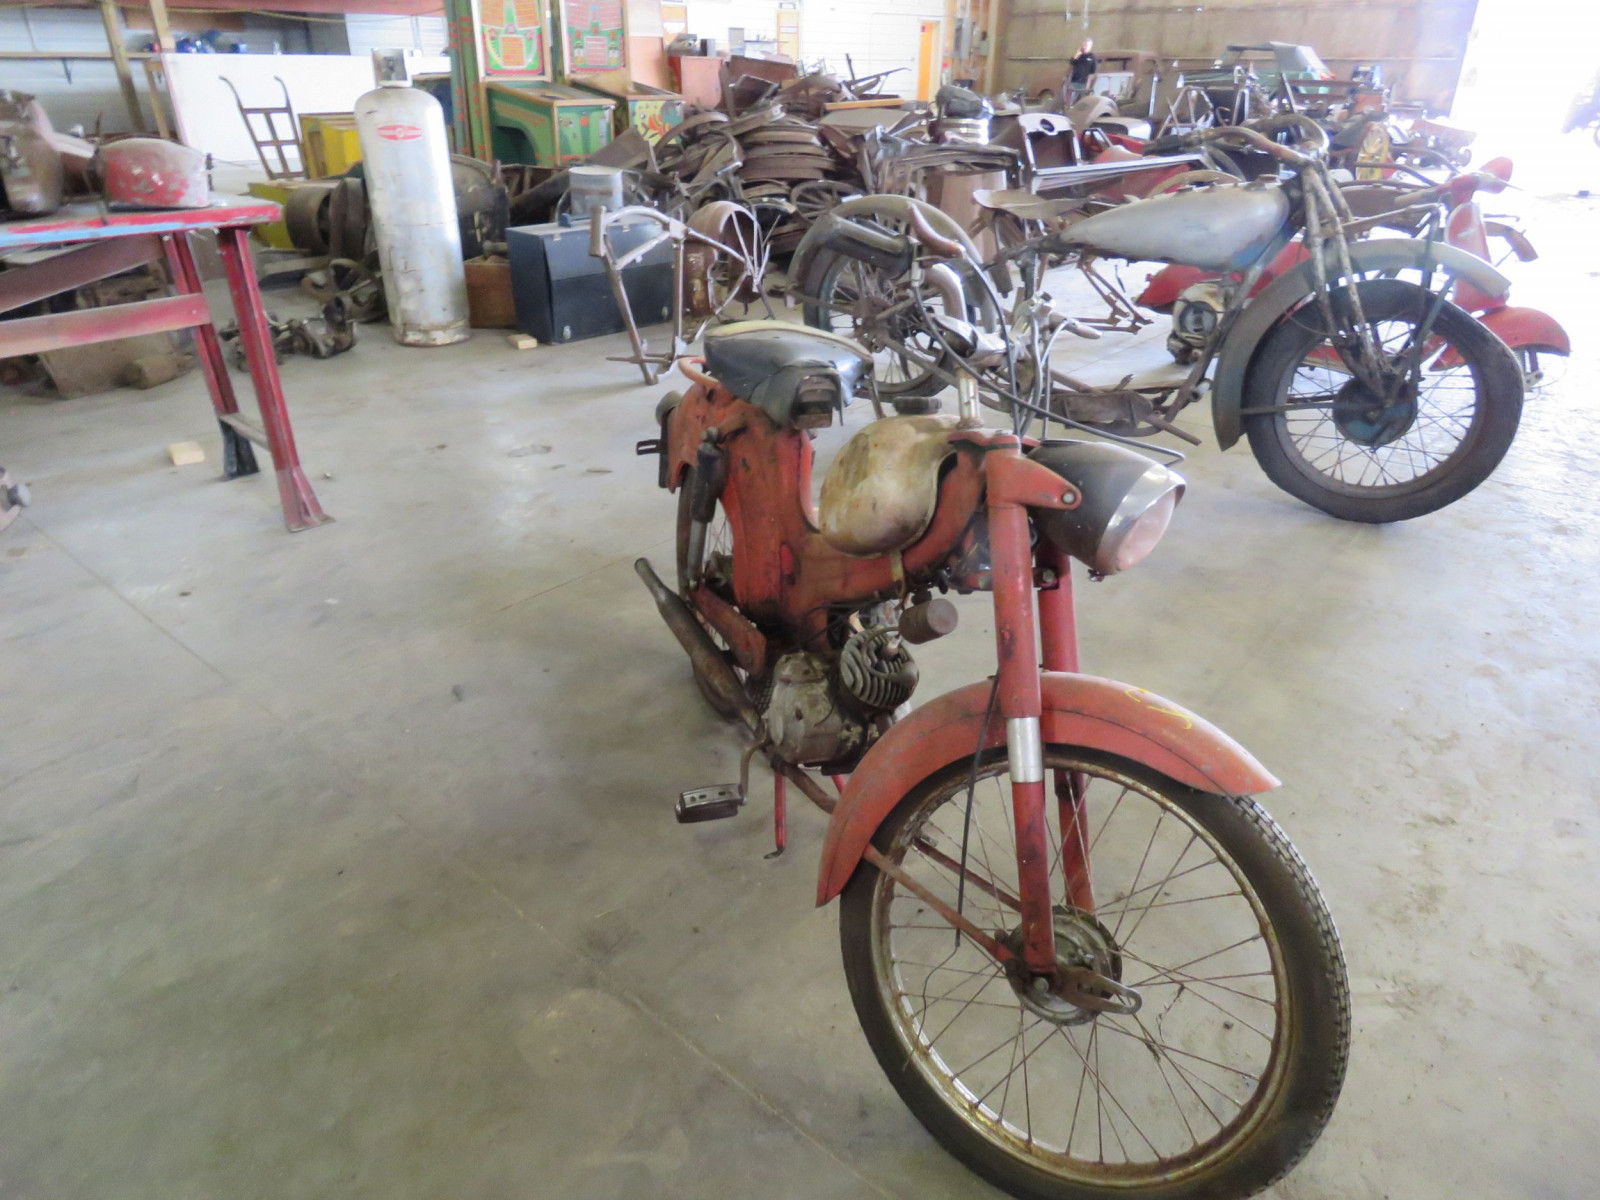 Vintage Wards Motorcycle Project - Image 2